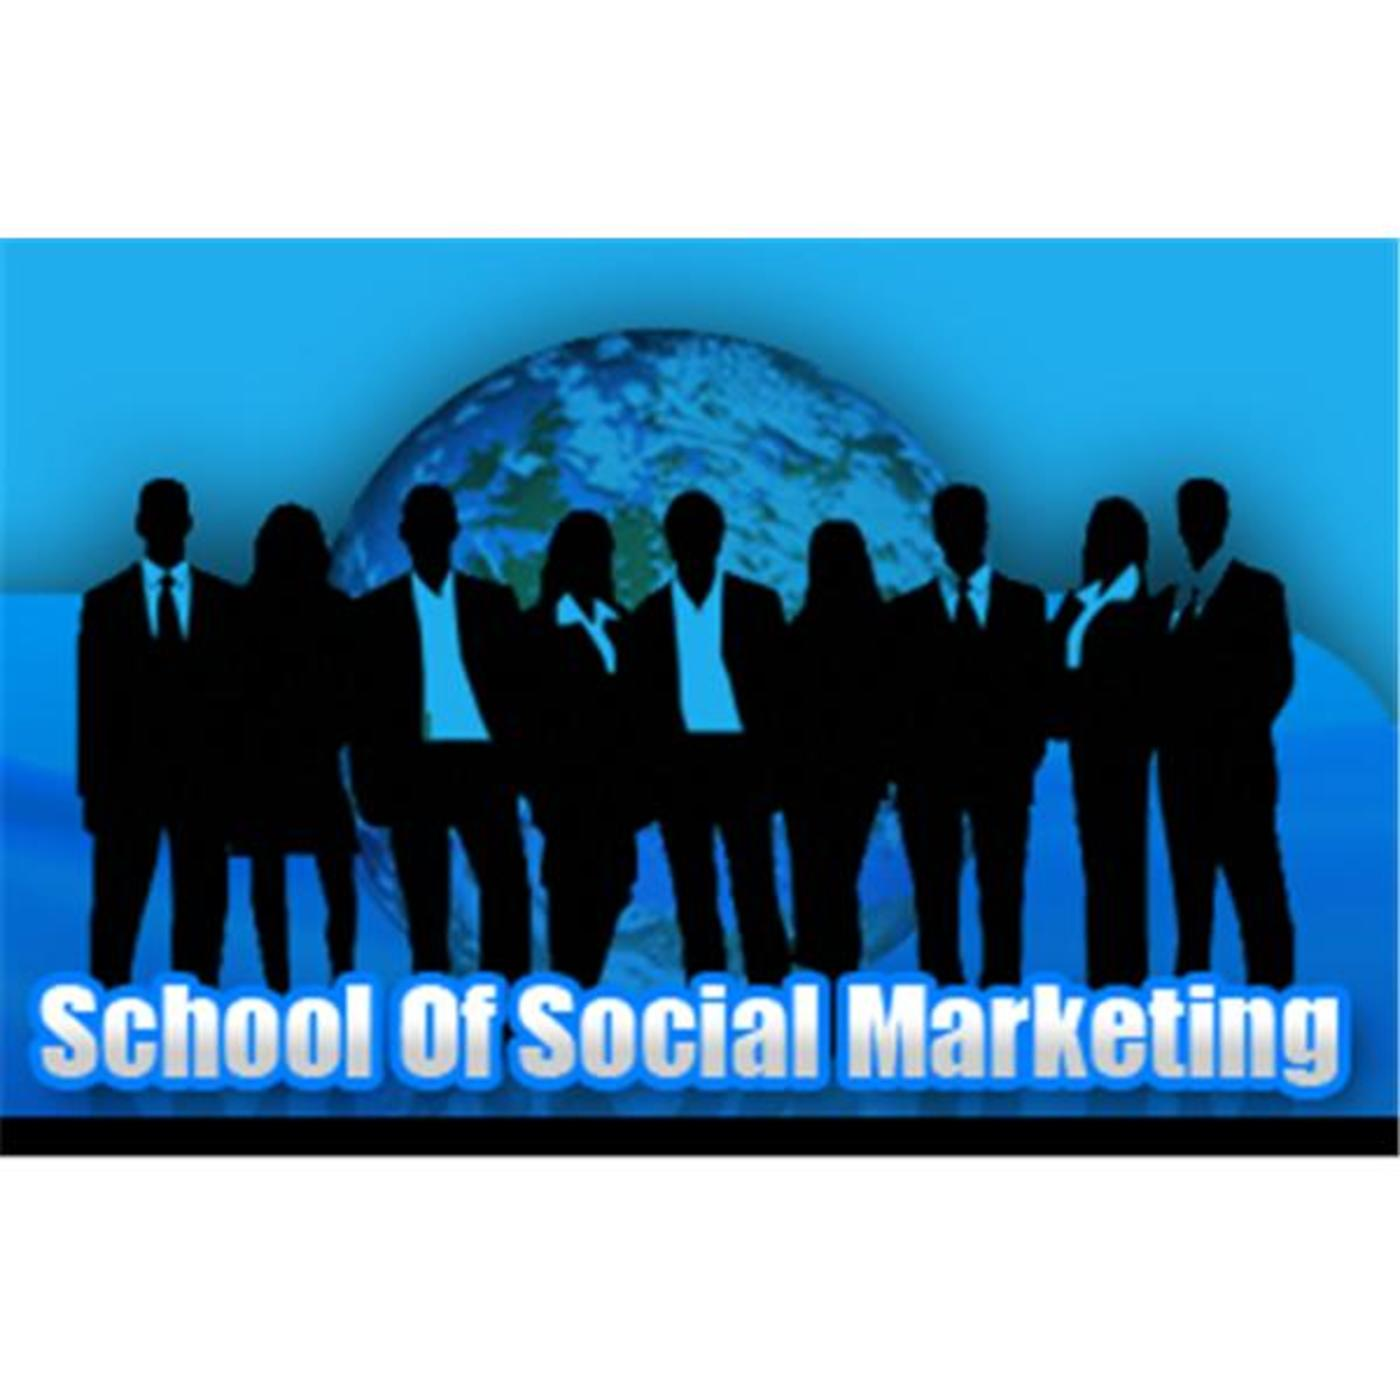 School of Social Marketing